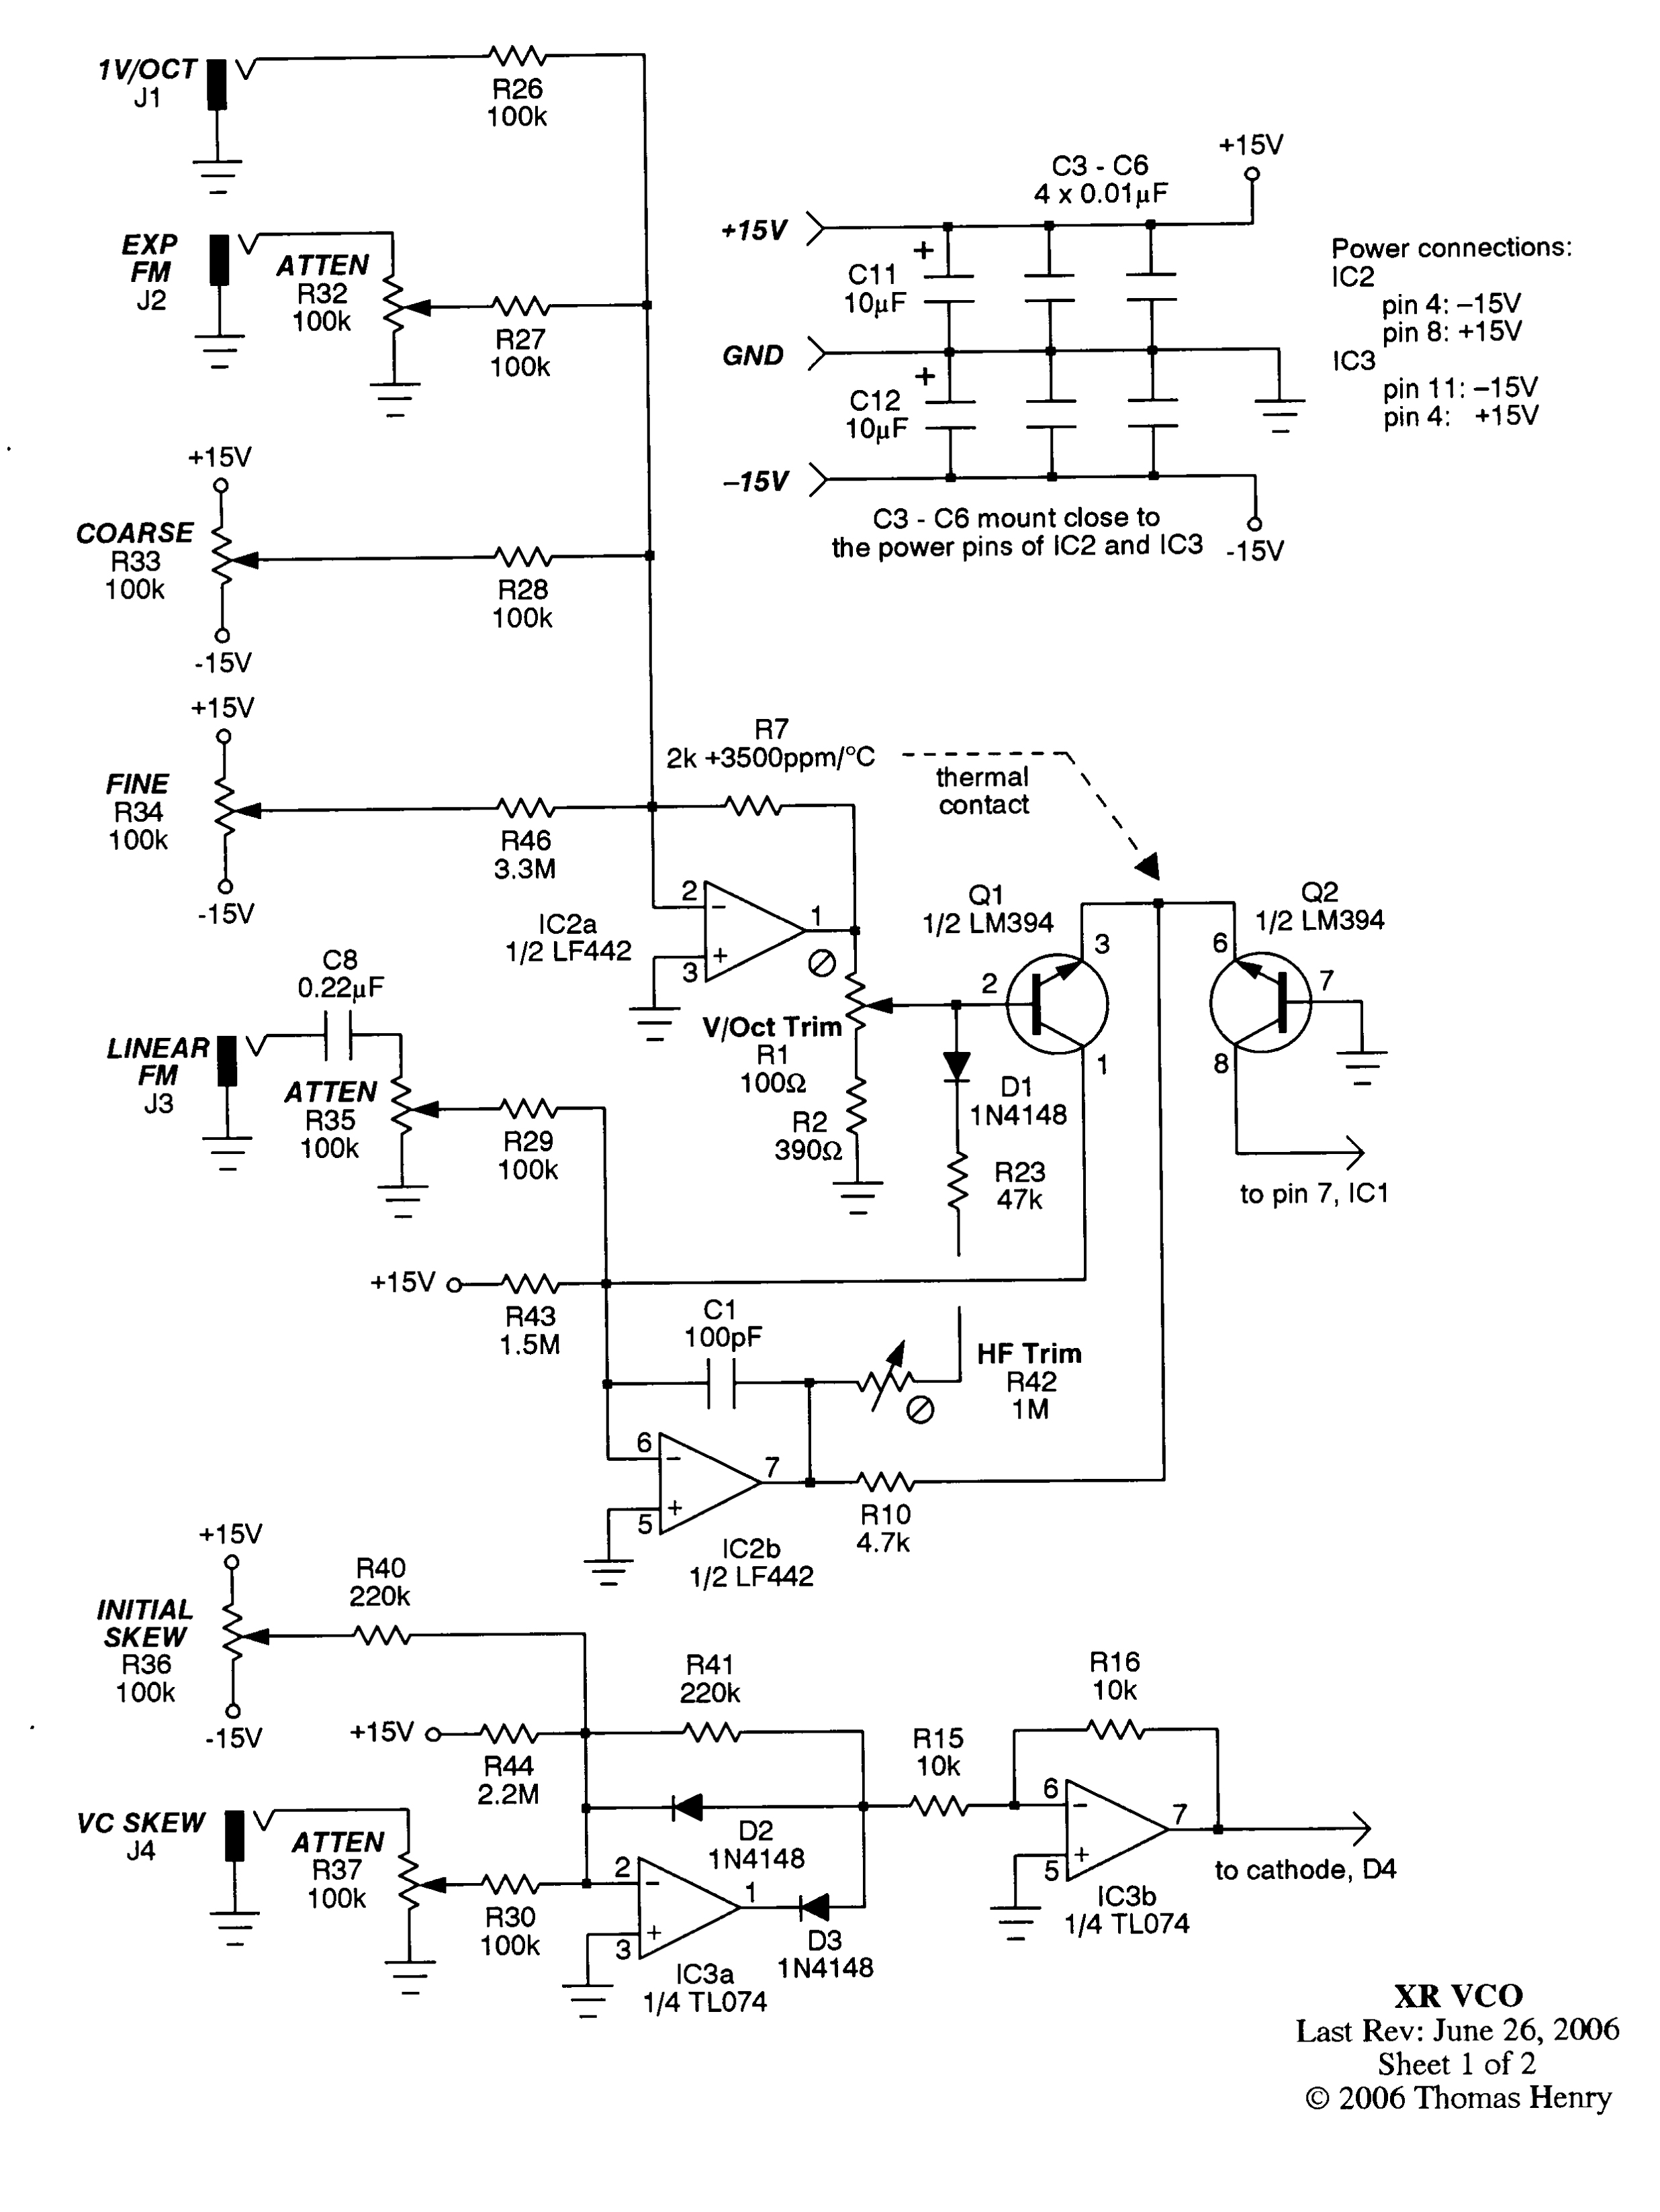 Wiki Schematics The Xr Vco Project Voltage Controlled Divide By N Sn Voice Digital Oscillator Vcdo1 Listbytype